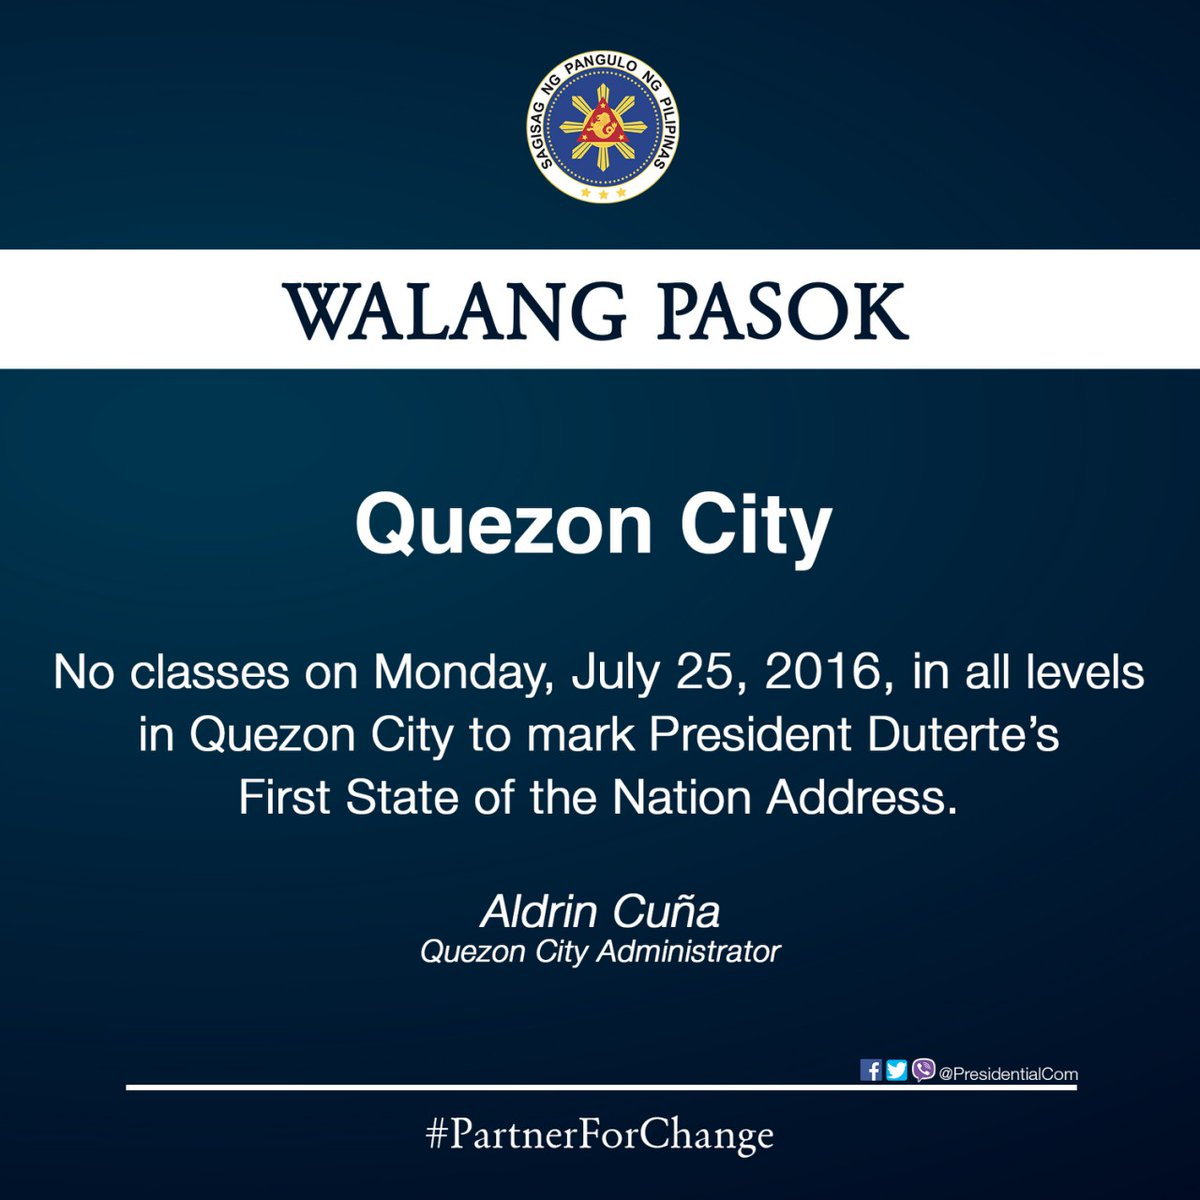 #WalangPasok - Class suspension in Quezon City for July 25 2016